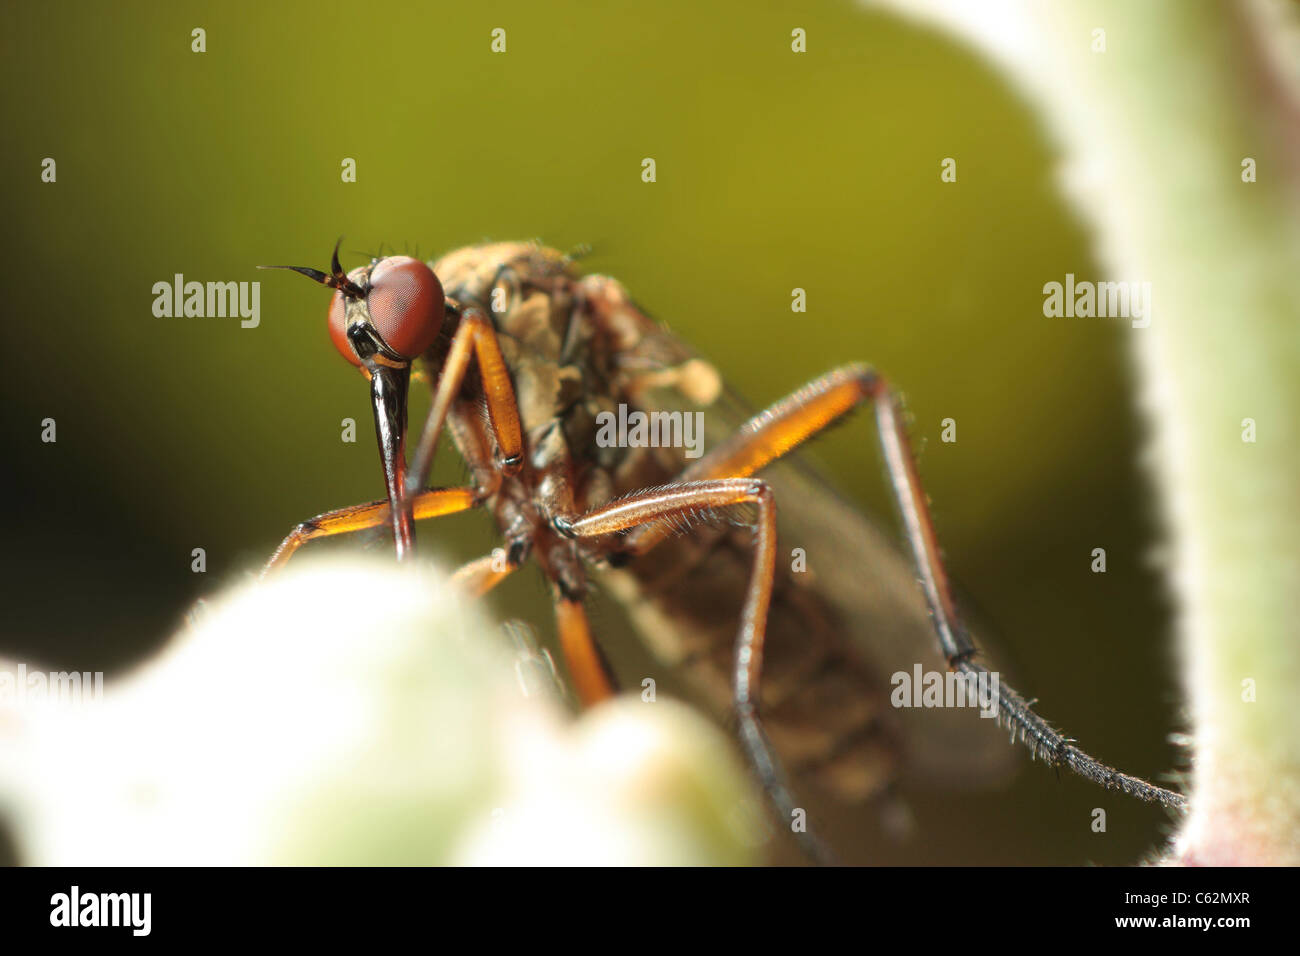 High magnification macro image of an empid fly showing its compound eyes. - Stock Image